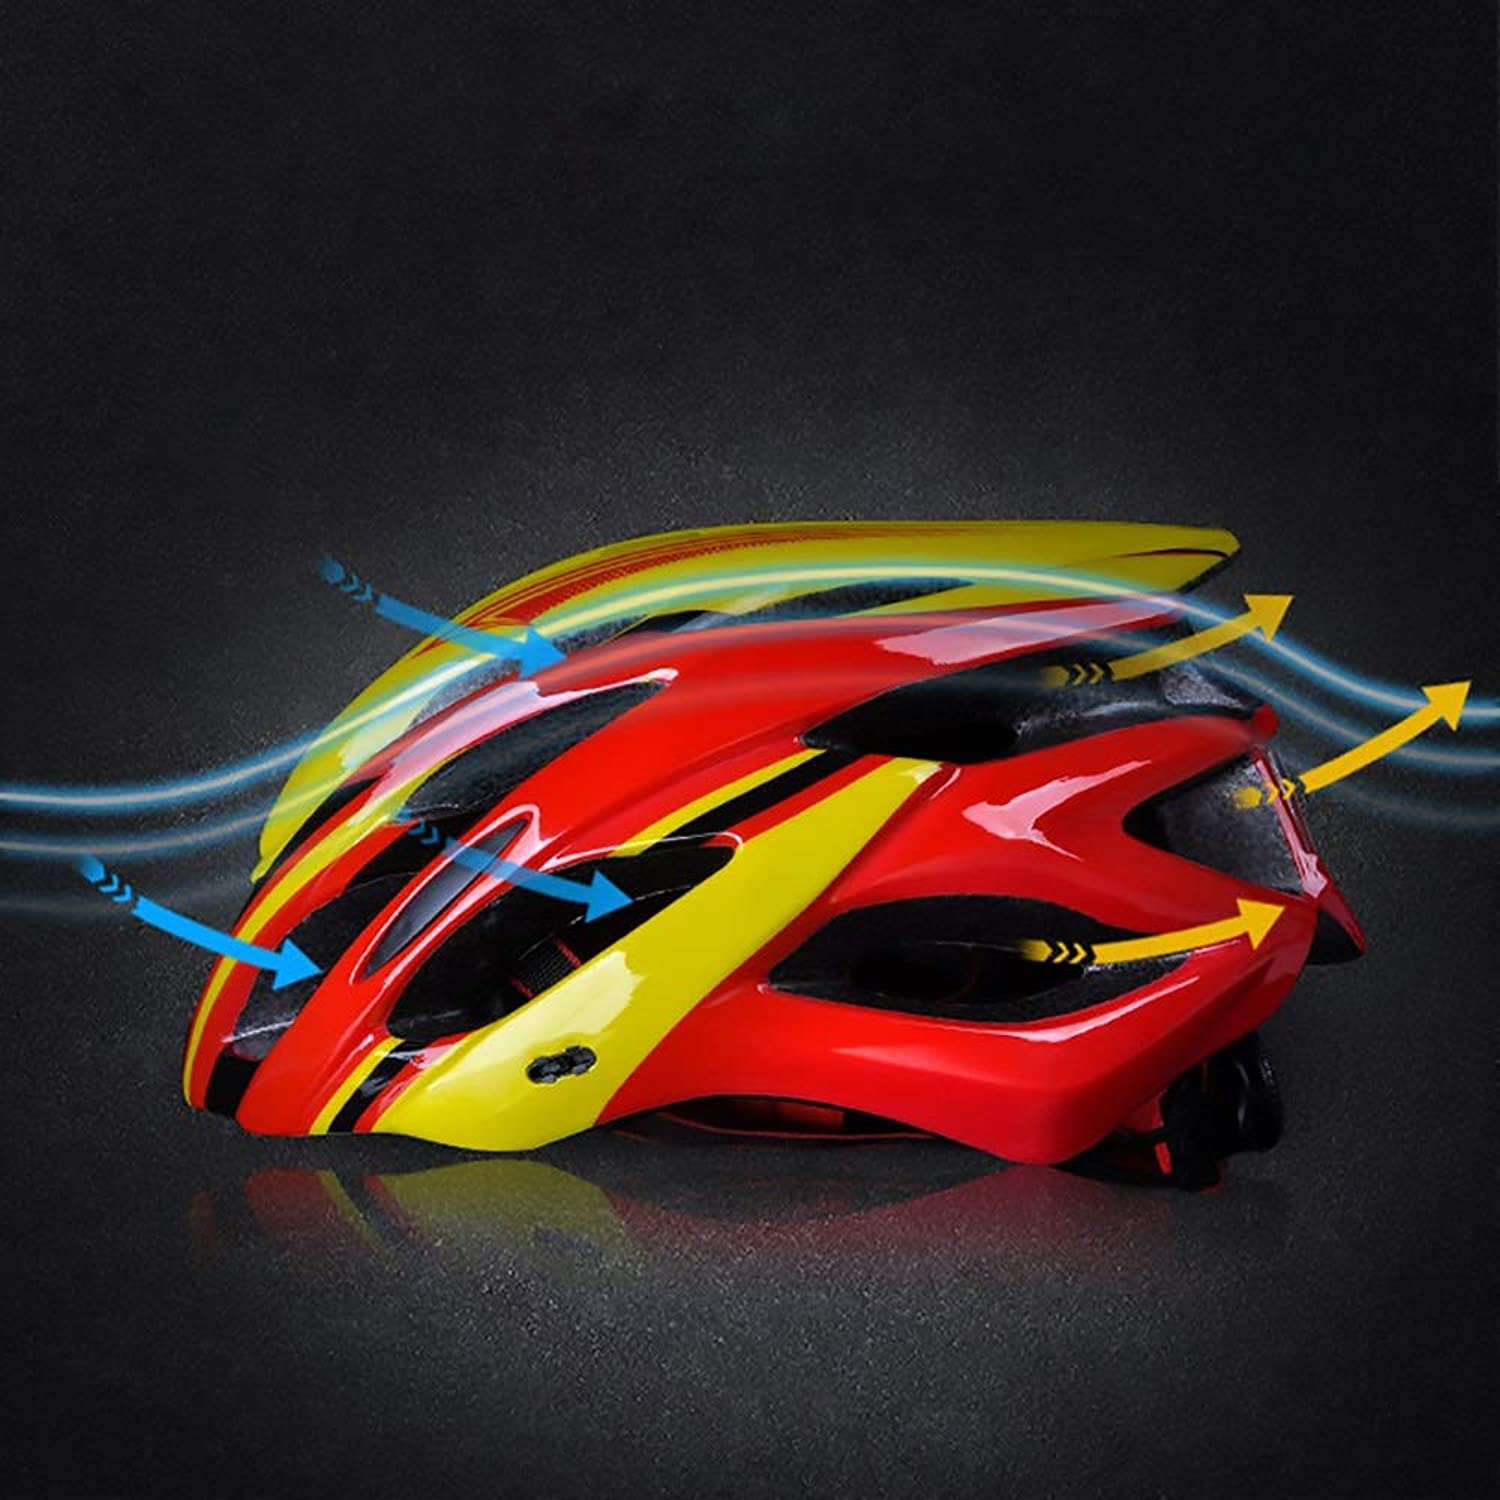 Songlin@yuan Red and Yellow 21 Hole Adult Bicycle Breathable Helmet Riding Electric Car Motorcycle Helmet Bicycle Mountain Bike Helmet Outdoor Riding Equipment Predection